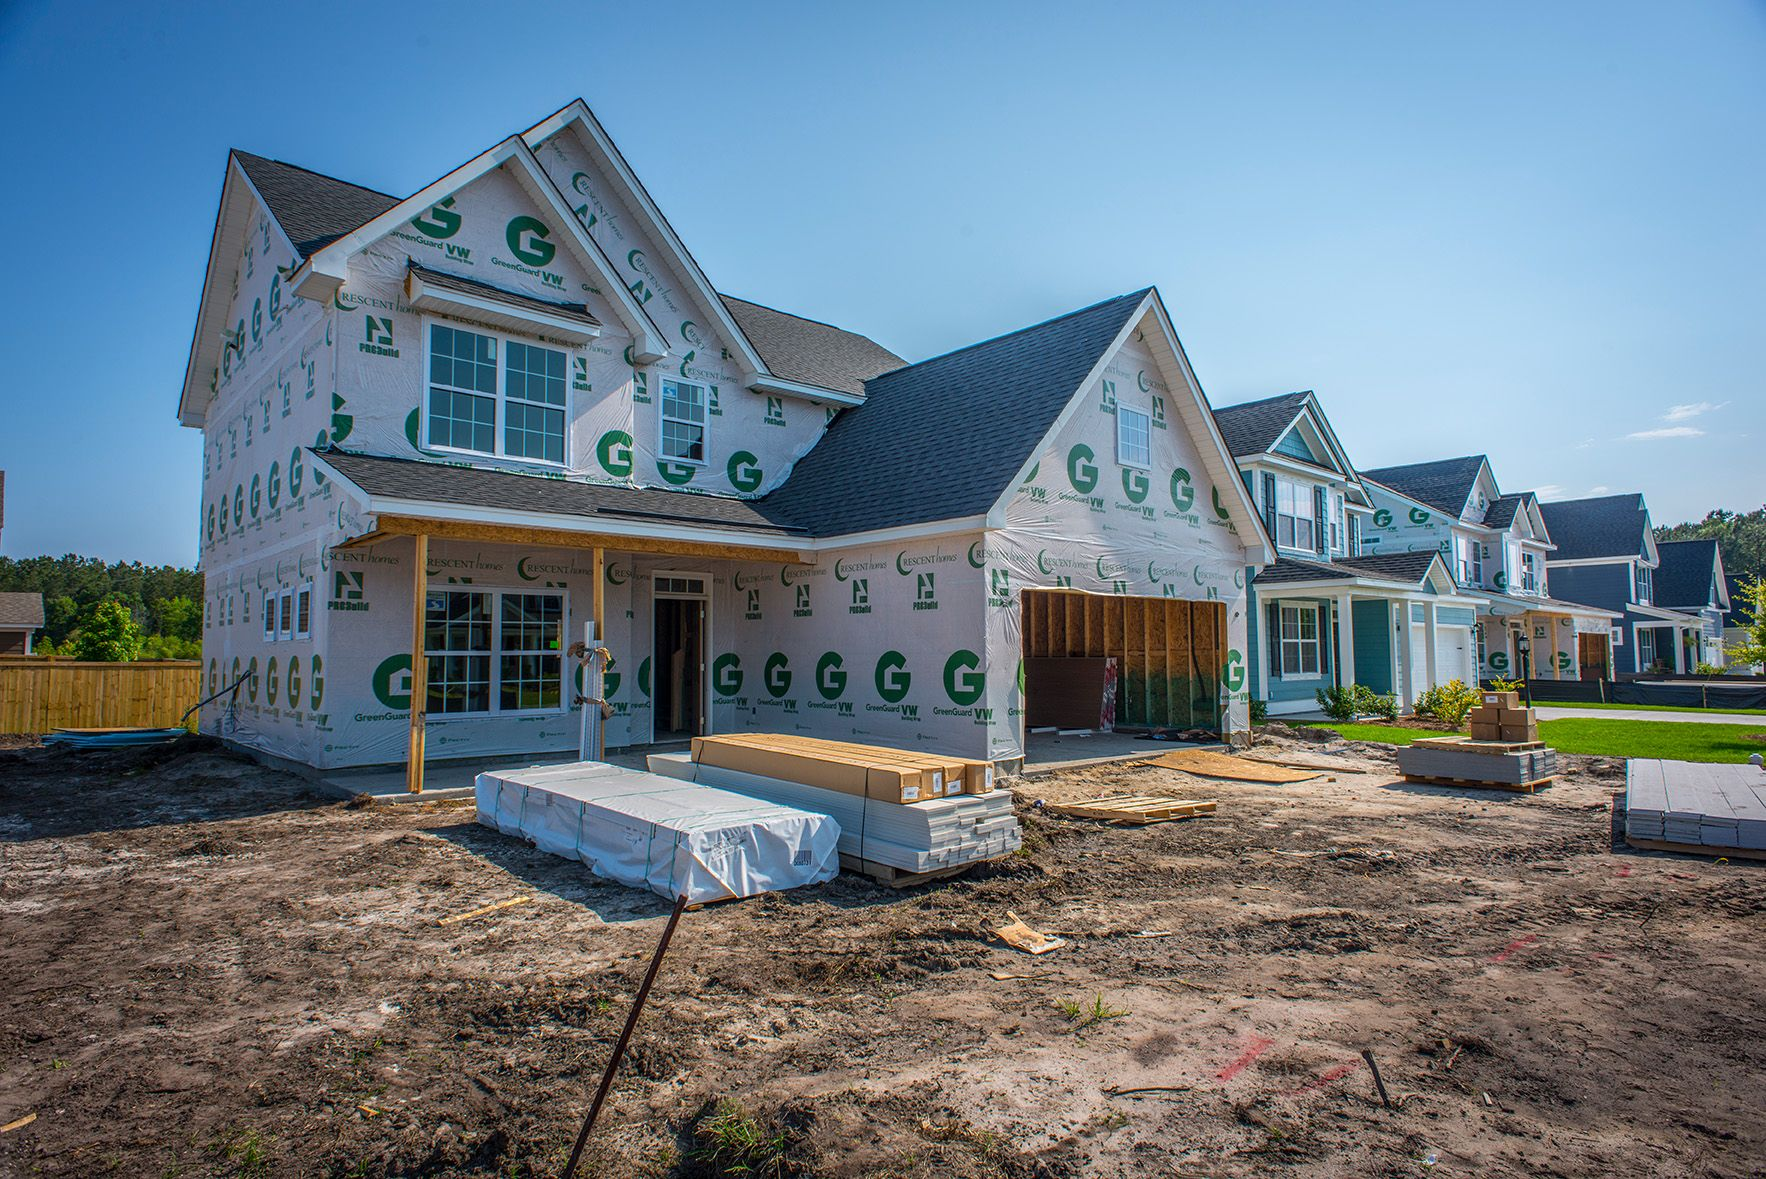 Why buy with a home warranty crescent homes blog for Home building blog